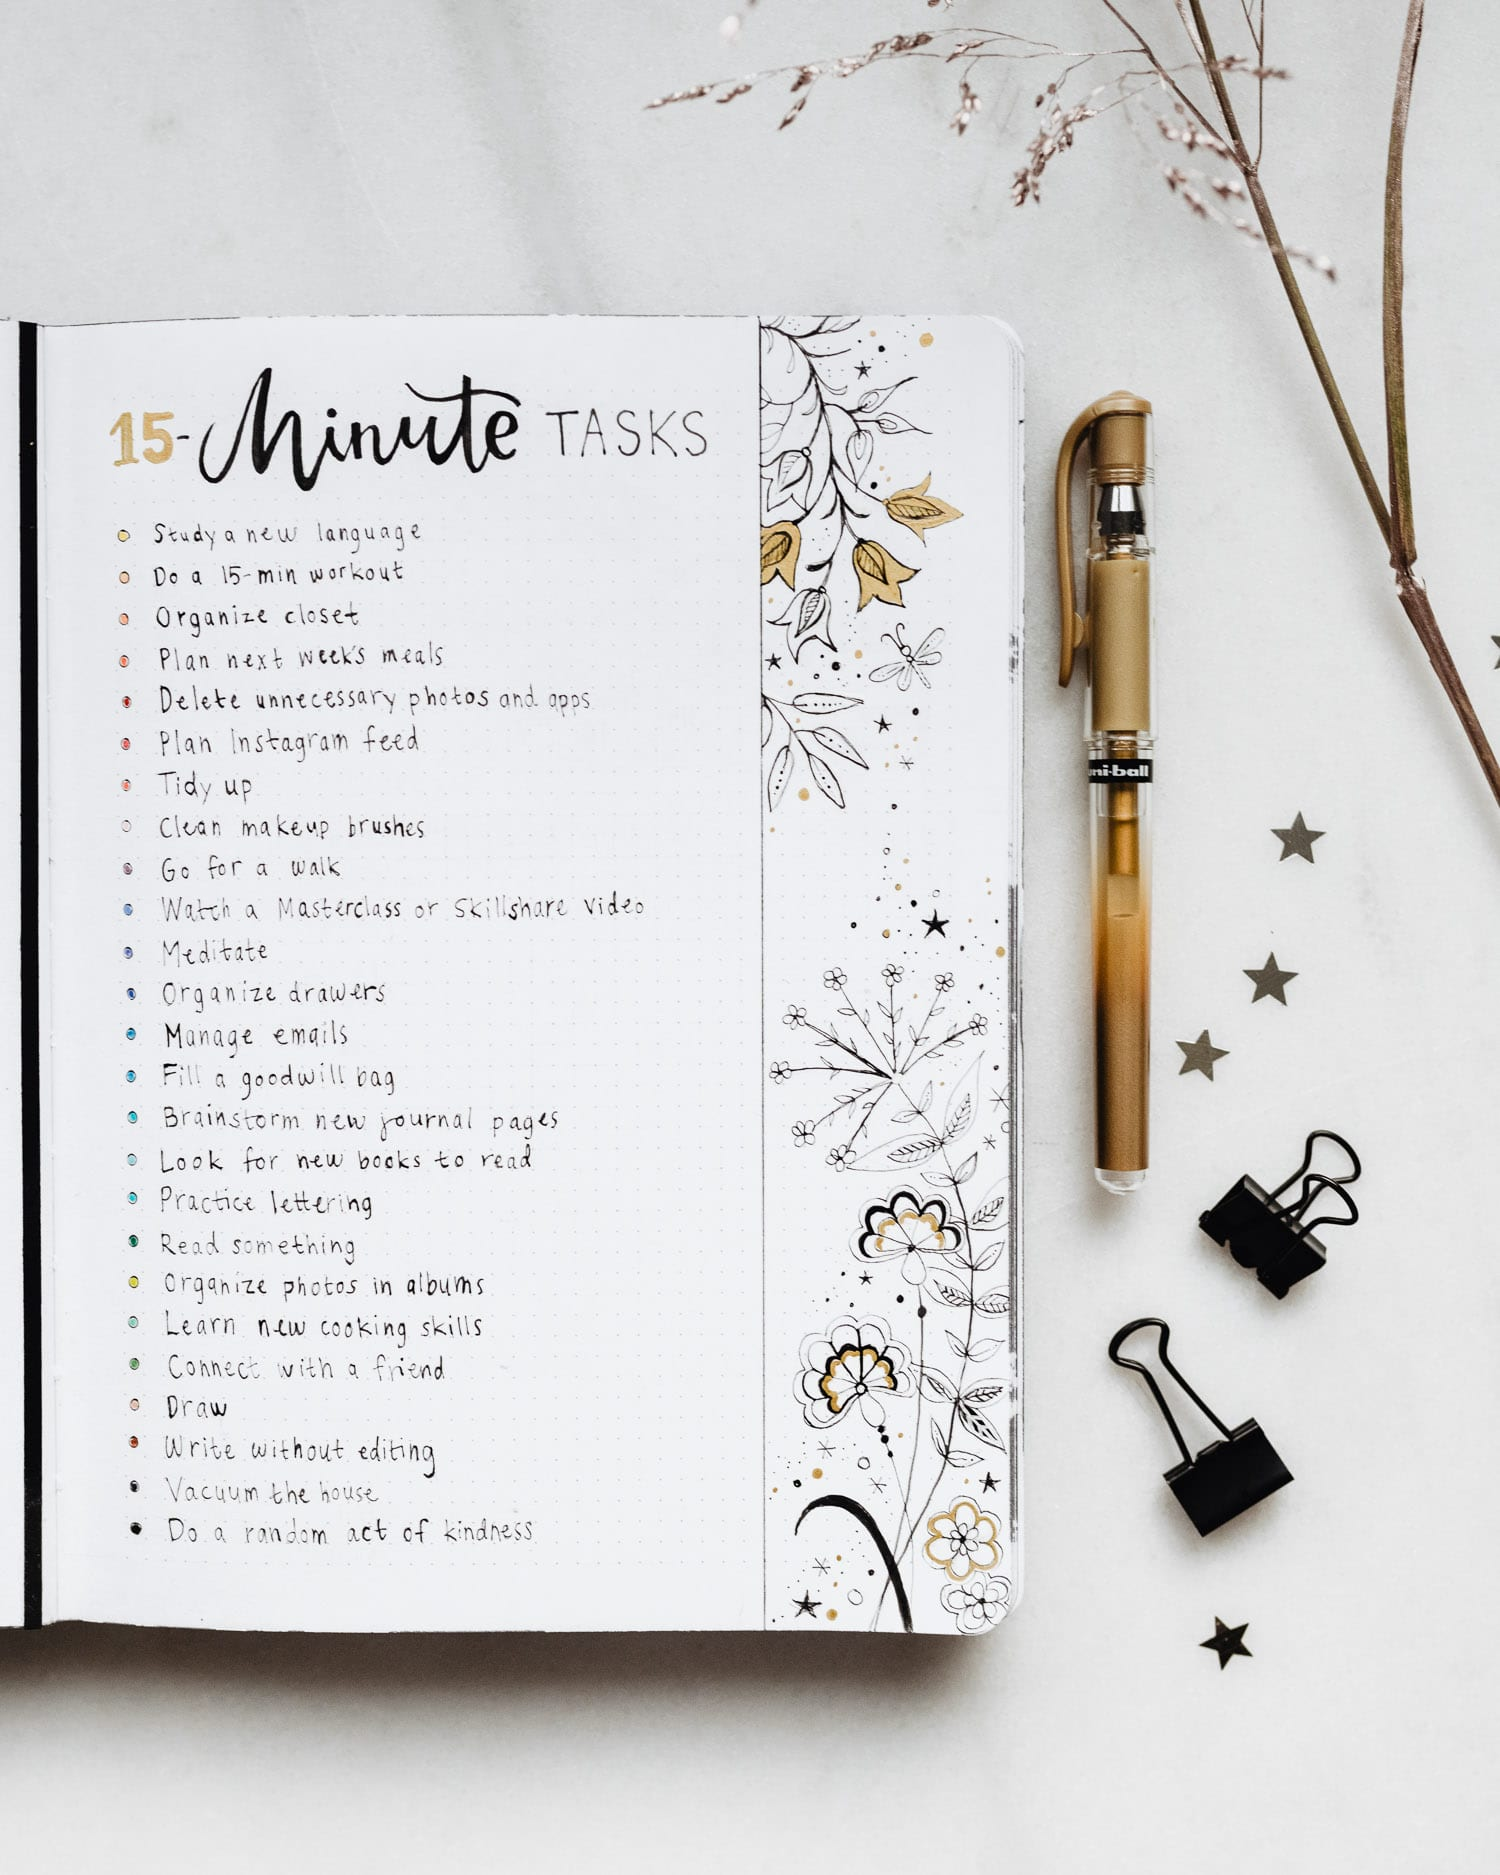 Bullet Journal Collection Idea: 15-Minute Tasks